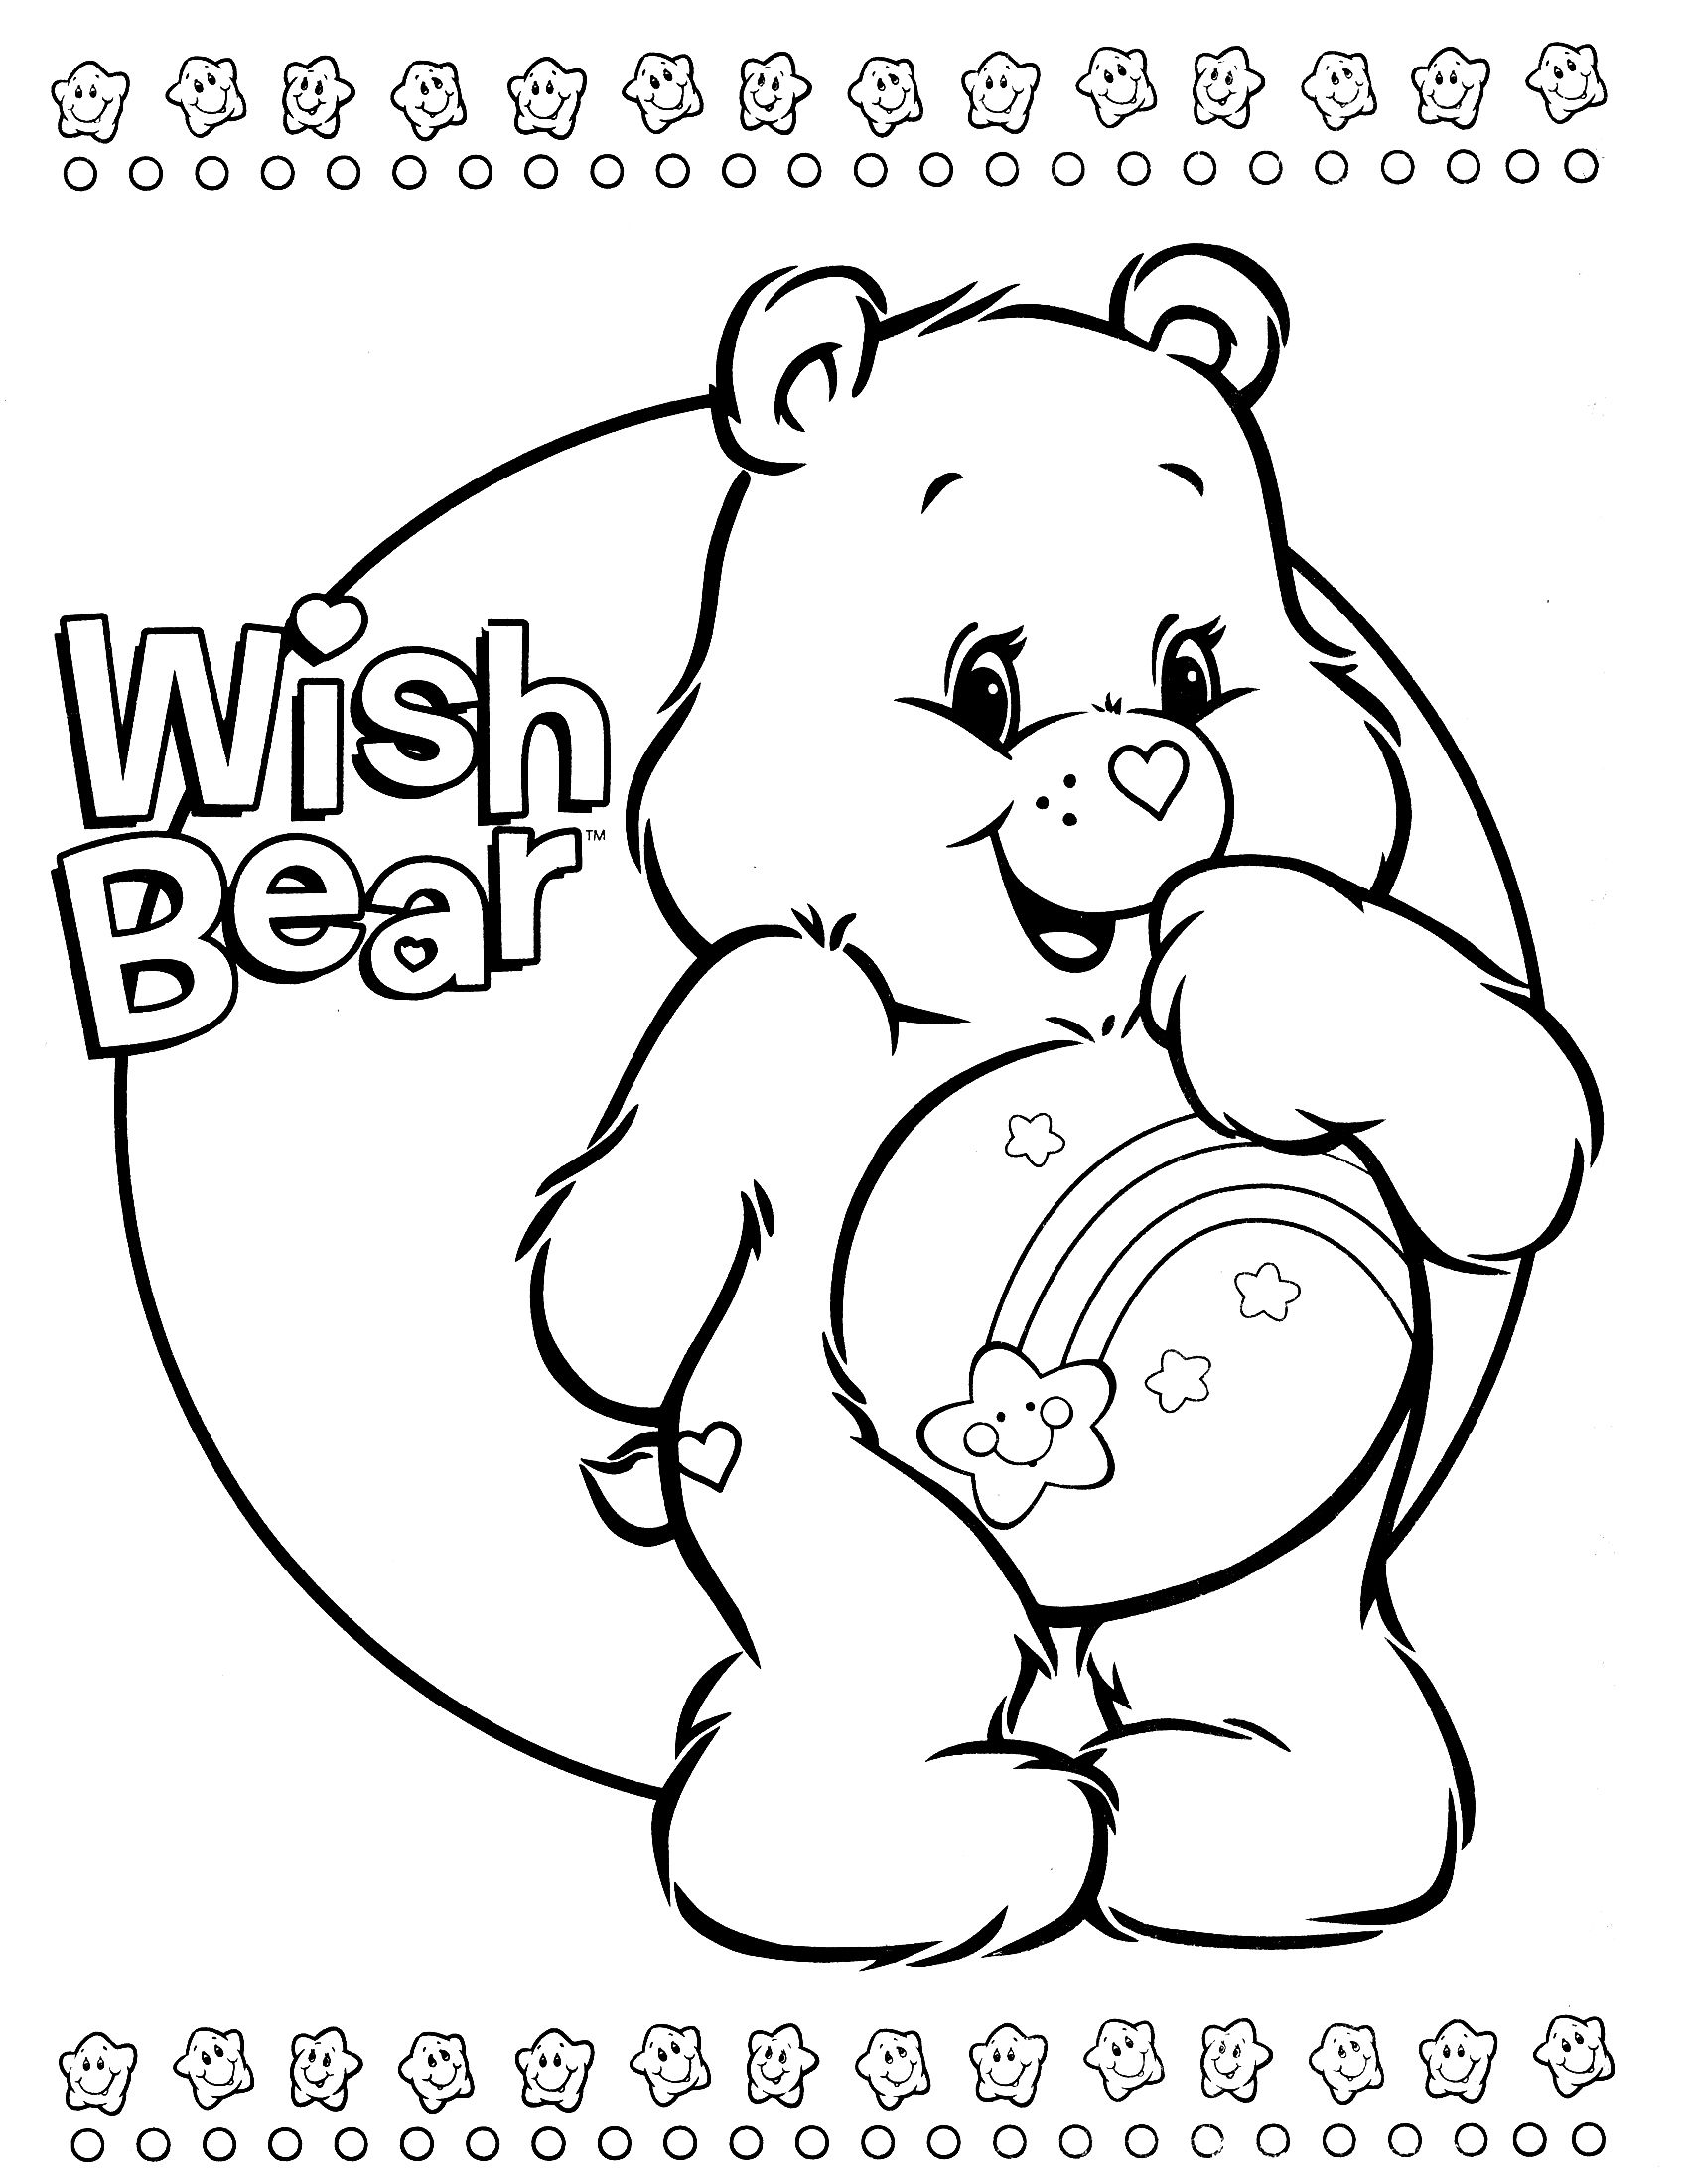 coloring pages for care bares - photo#35